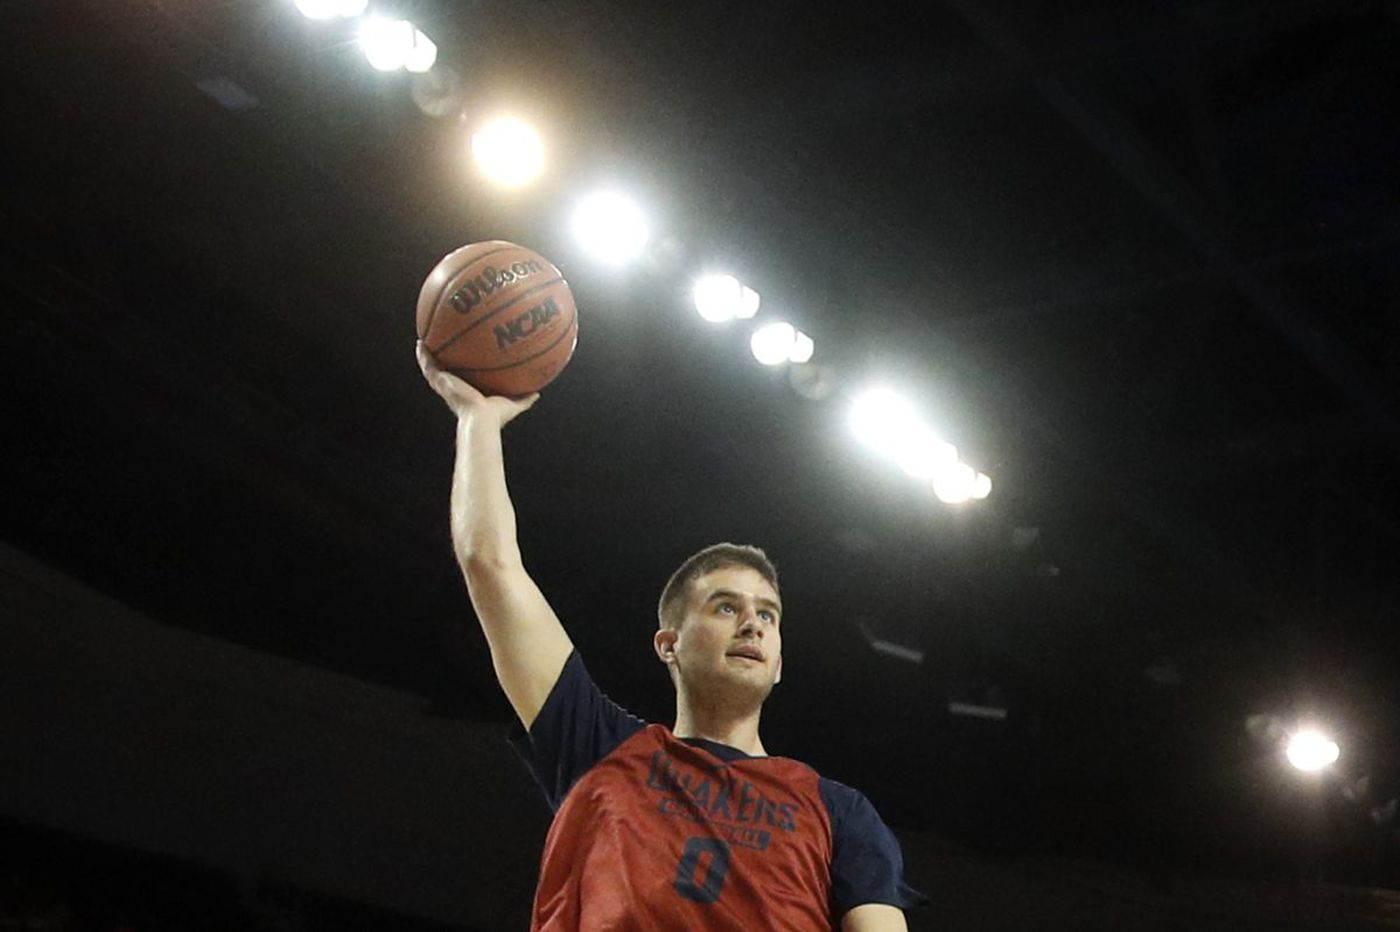 Penn blown away by crowd enthusiasm at open practice